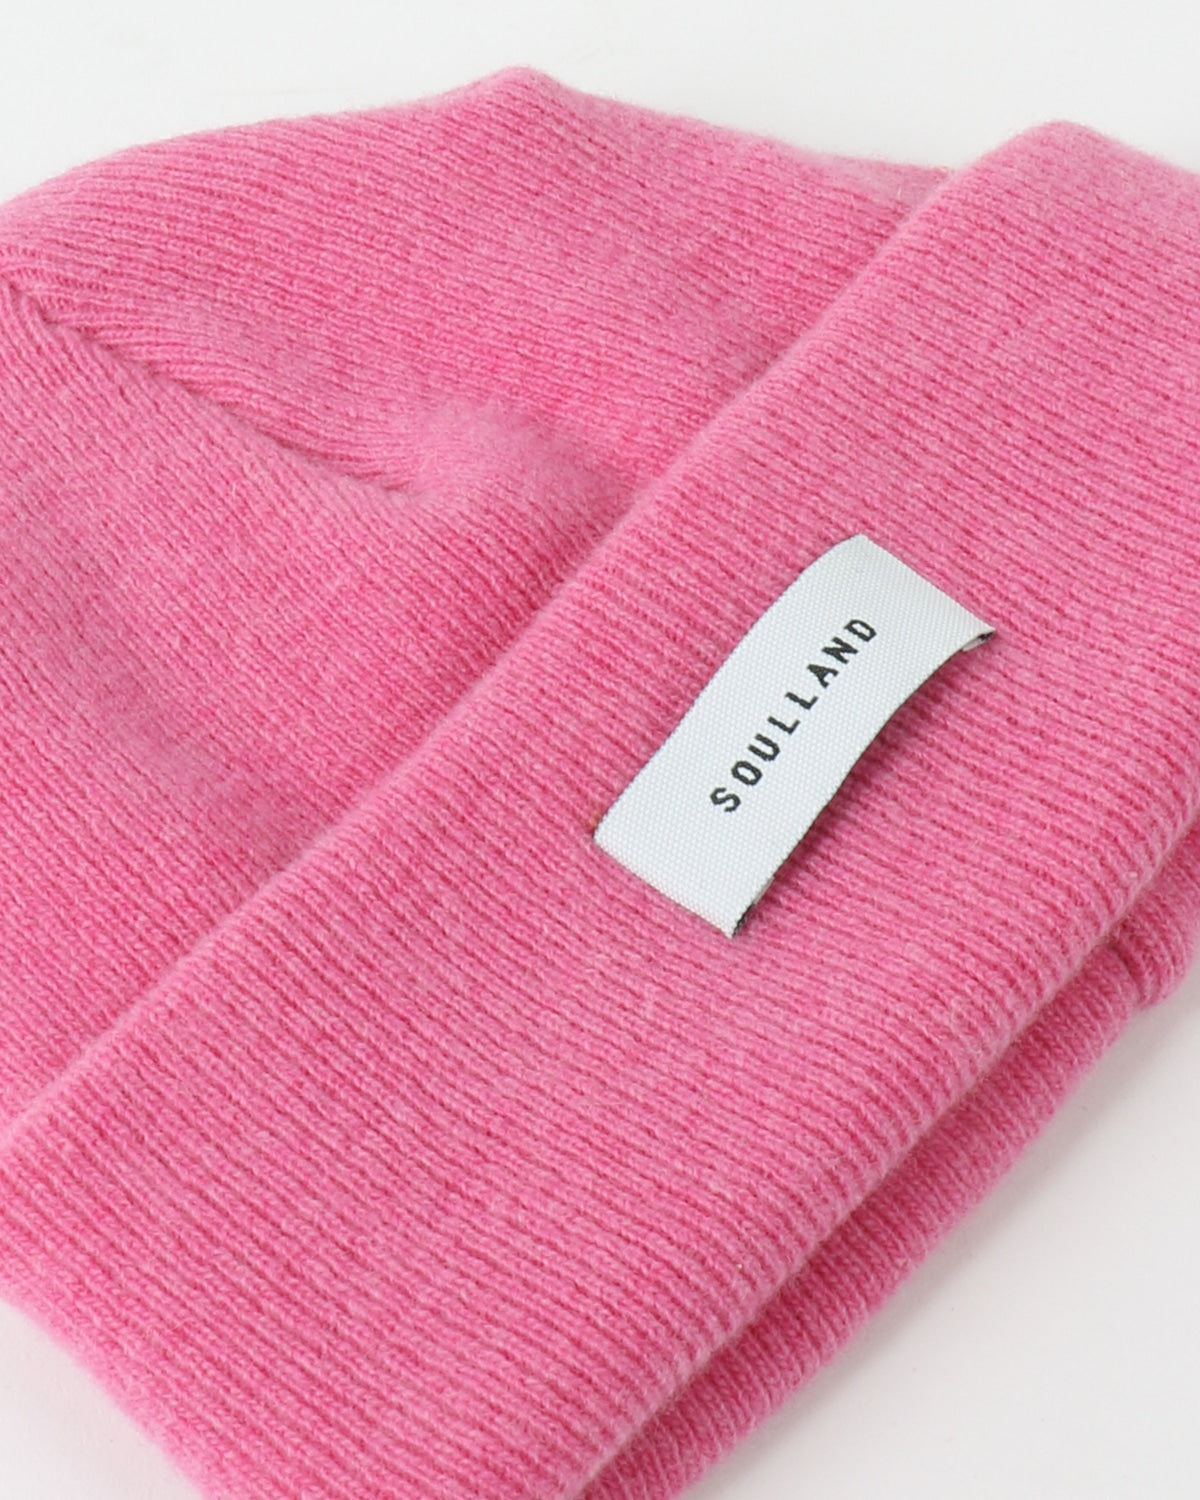 soulland_villy beanie_dusty pink_details_2_2